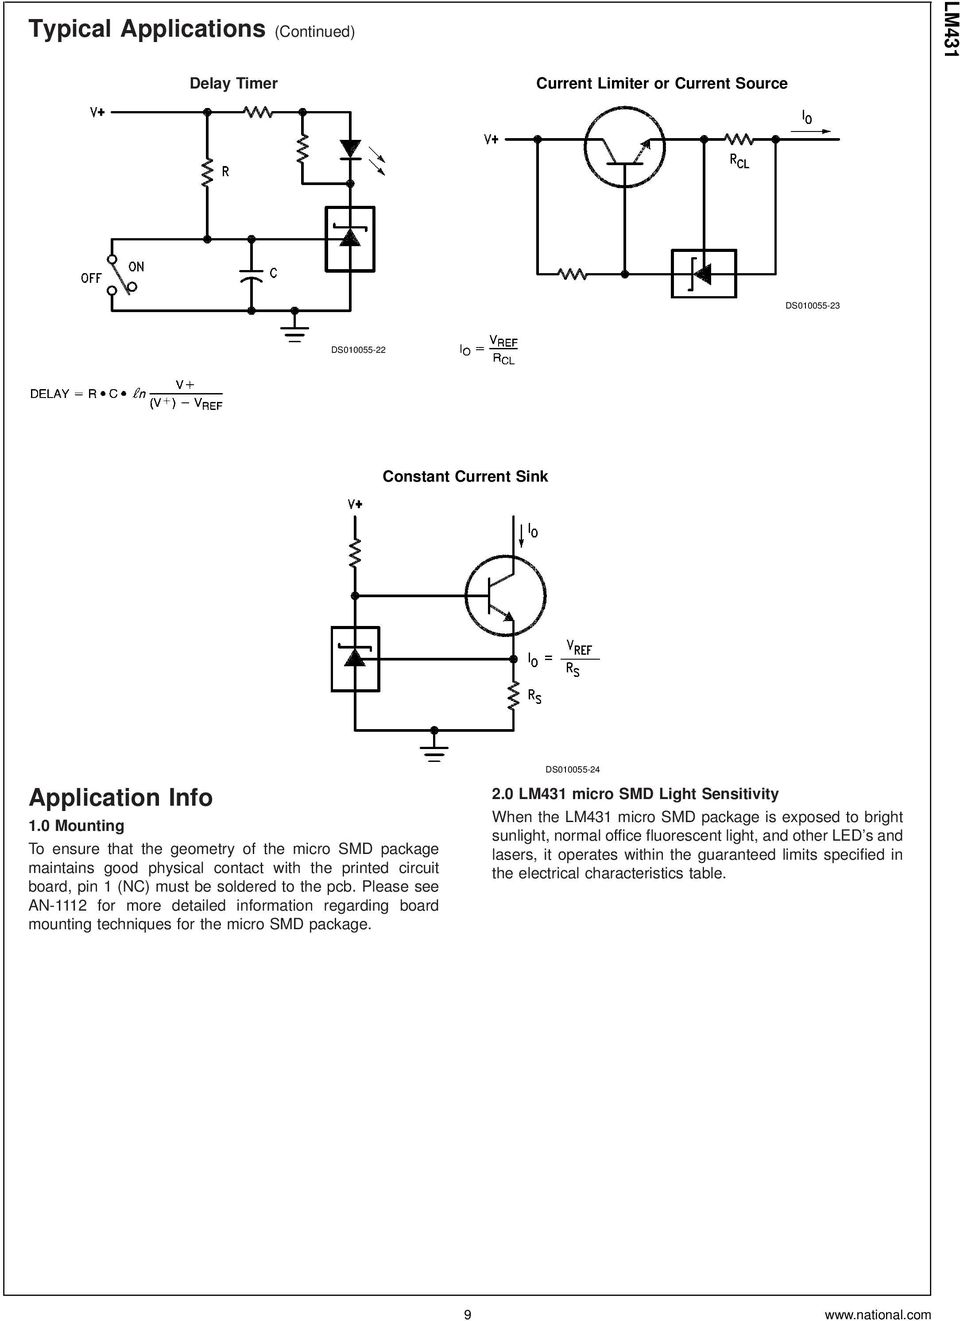 Lm431 Adjustable Precision Zener Shunt Regulator Pdf High Current Circuit Diagram Using Lm117 Please See An 1112 For More Detailed Information Regarding Board Mounting Techniques The Micro